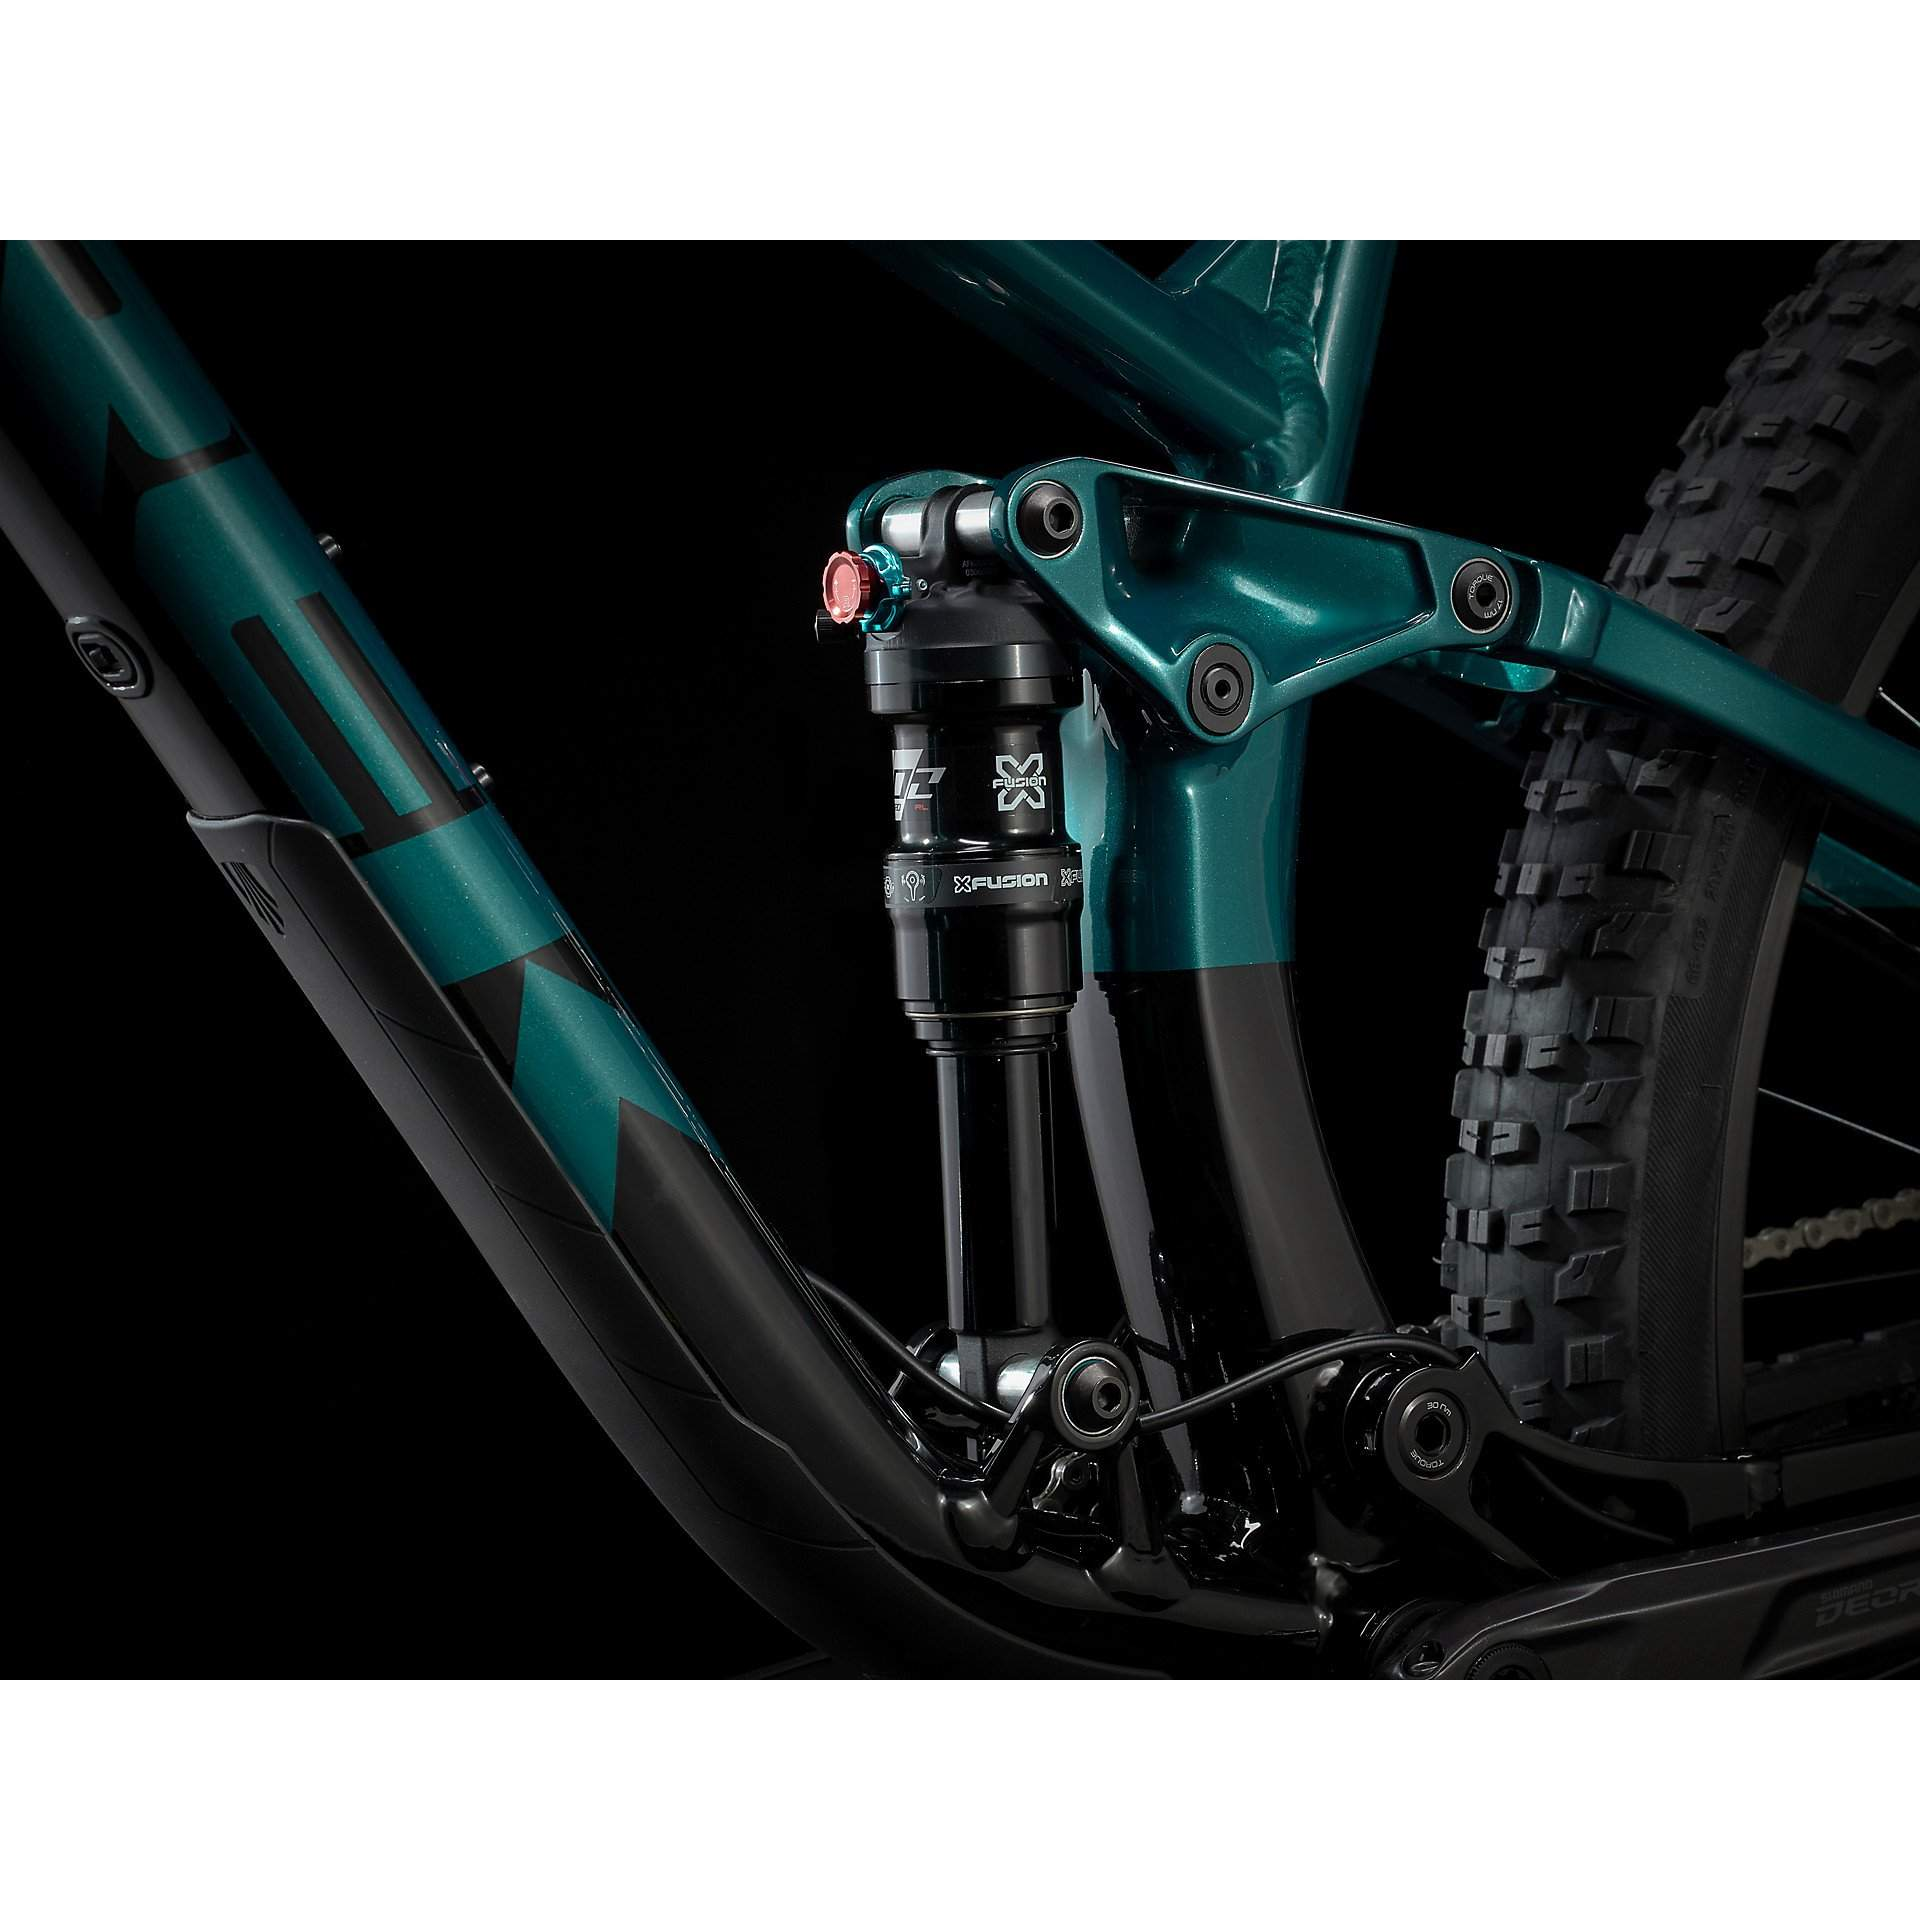 ROWER TREK FUEL EX 5 DARK AQUATIC|TREK BLACK 6